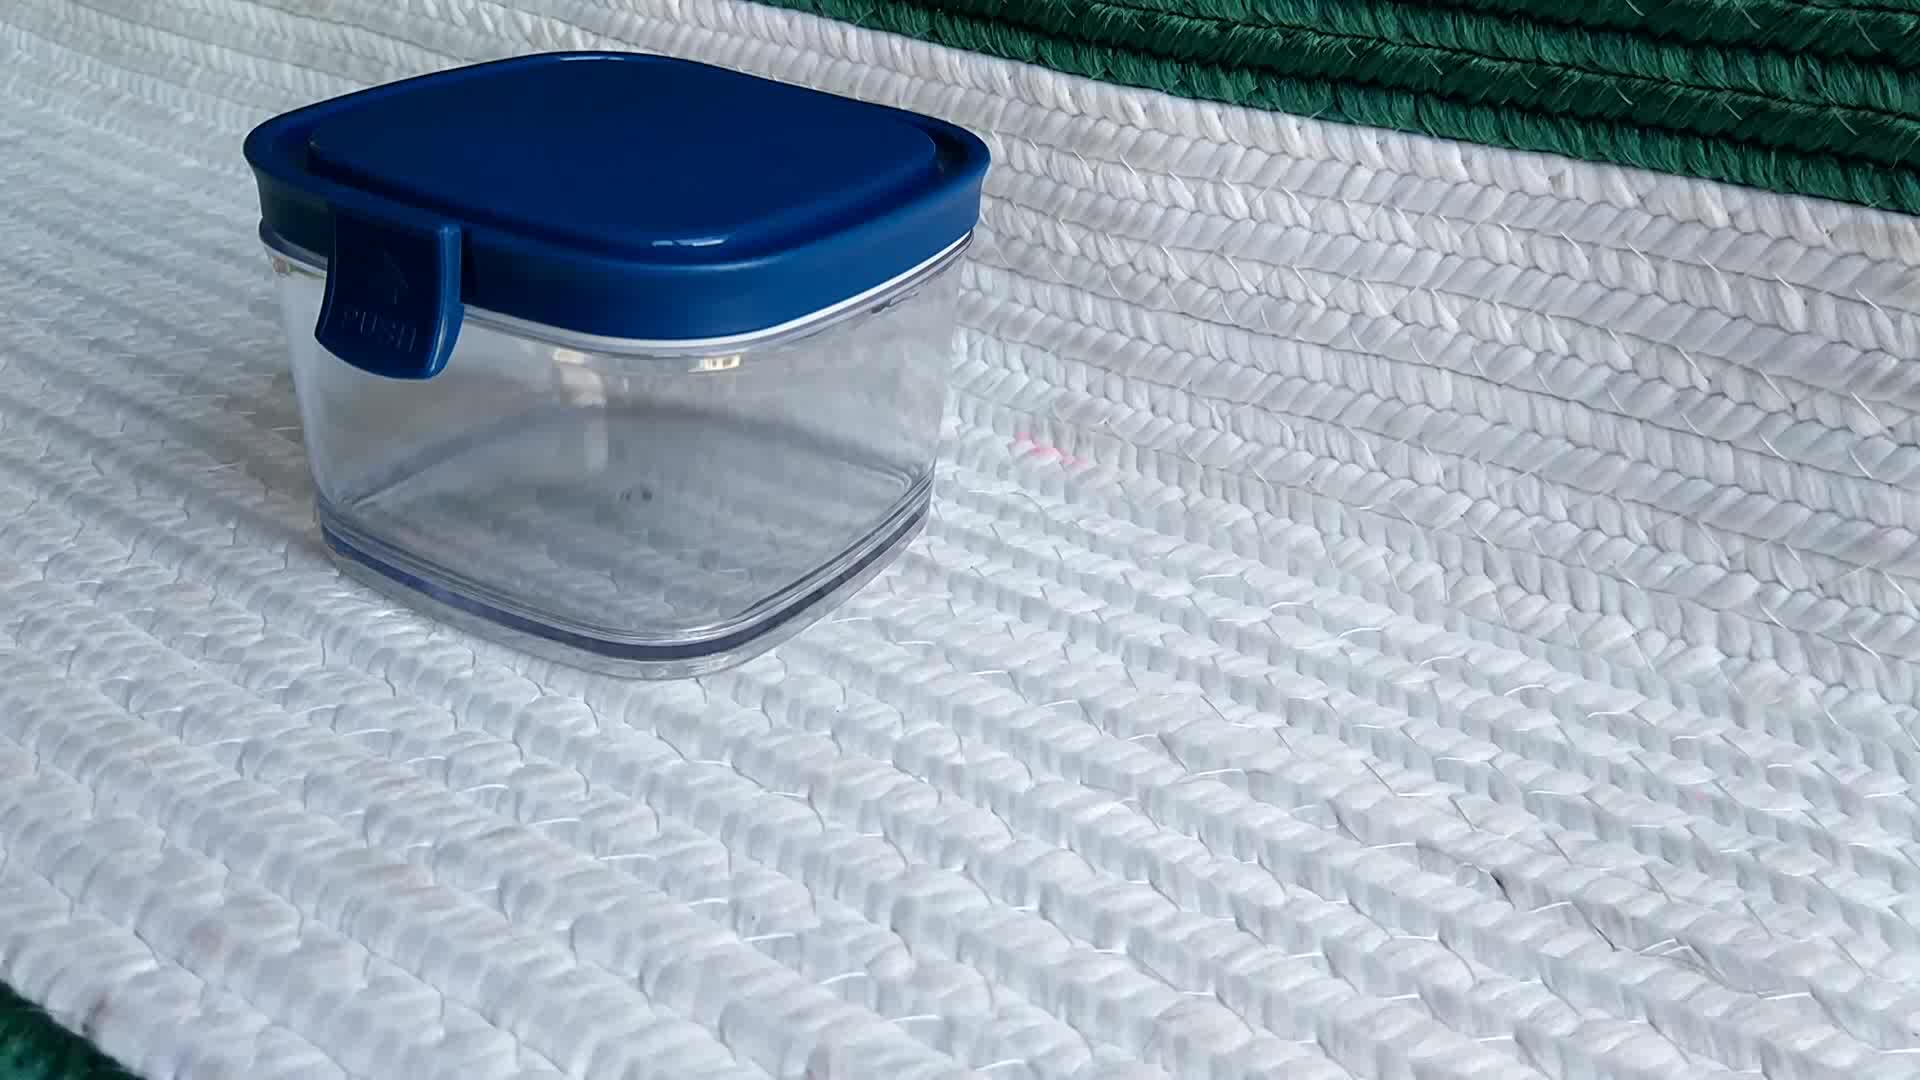 Plastic food container